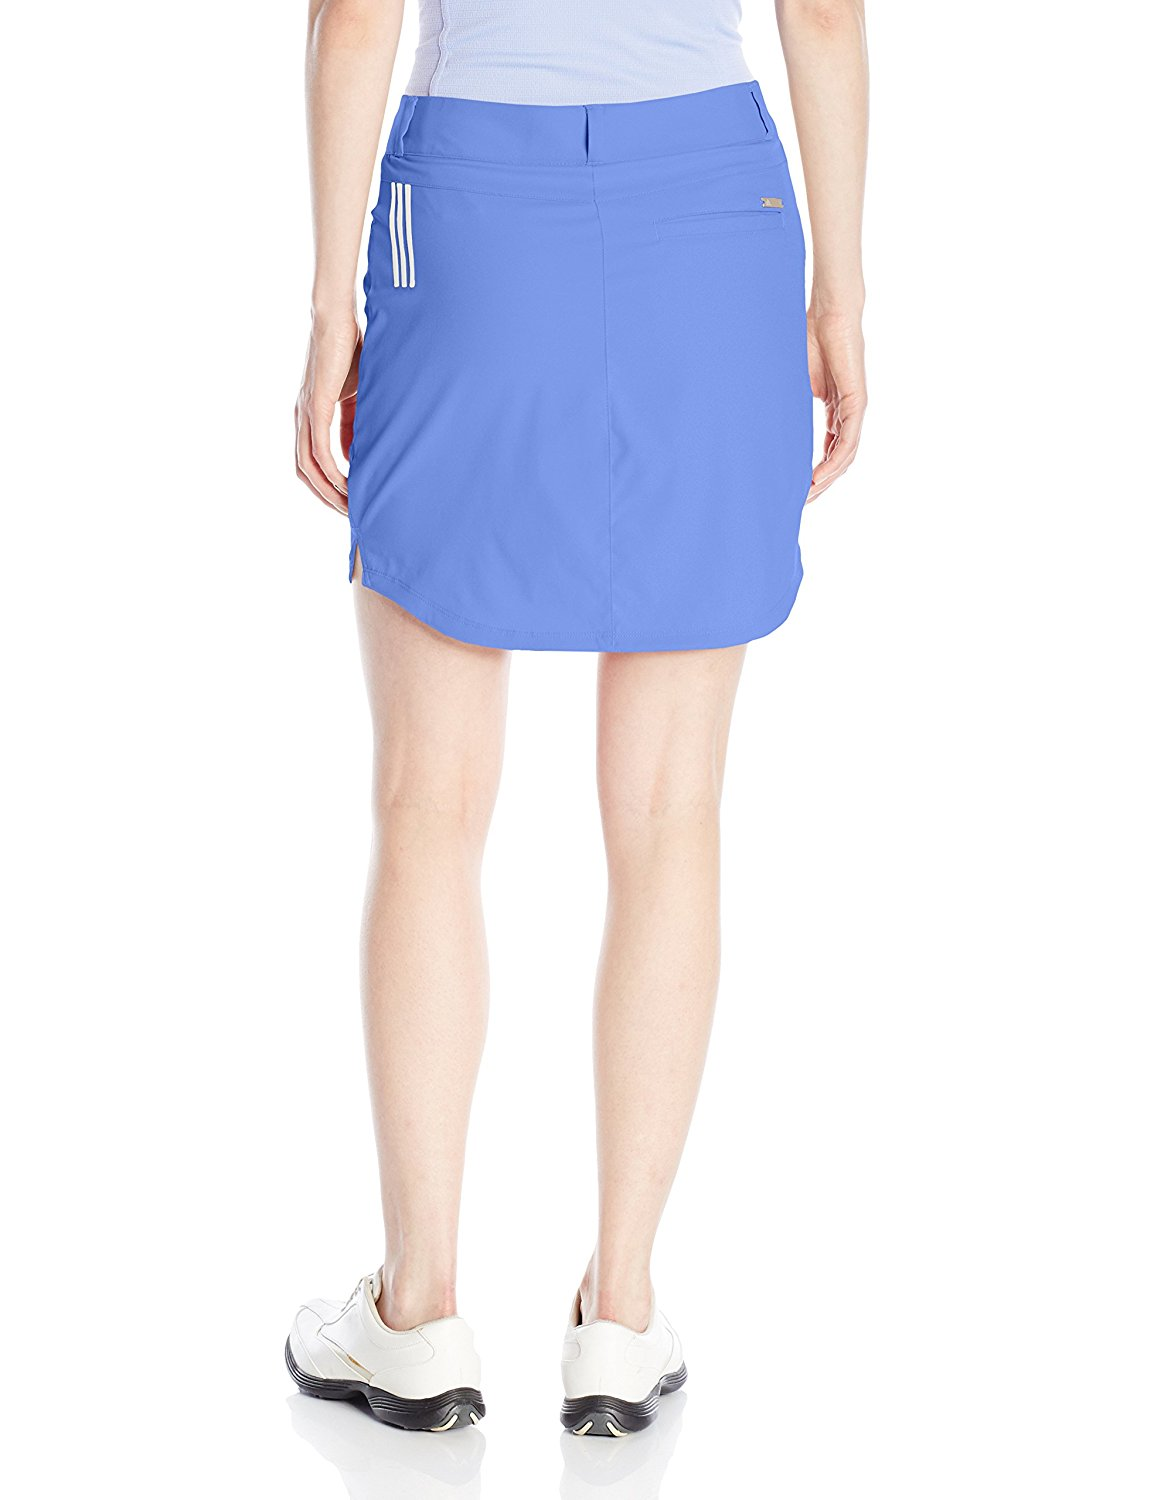 Adidas-Golf-Women-039-s-Essentials-3-Stripes-Skort-Pick-Size-amp-Color thumbnail 4